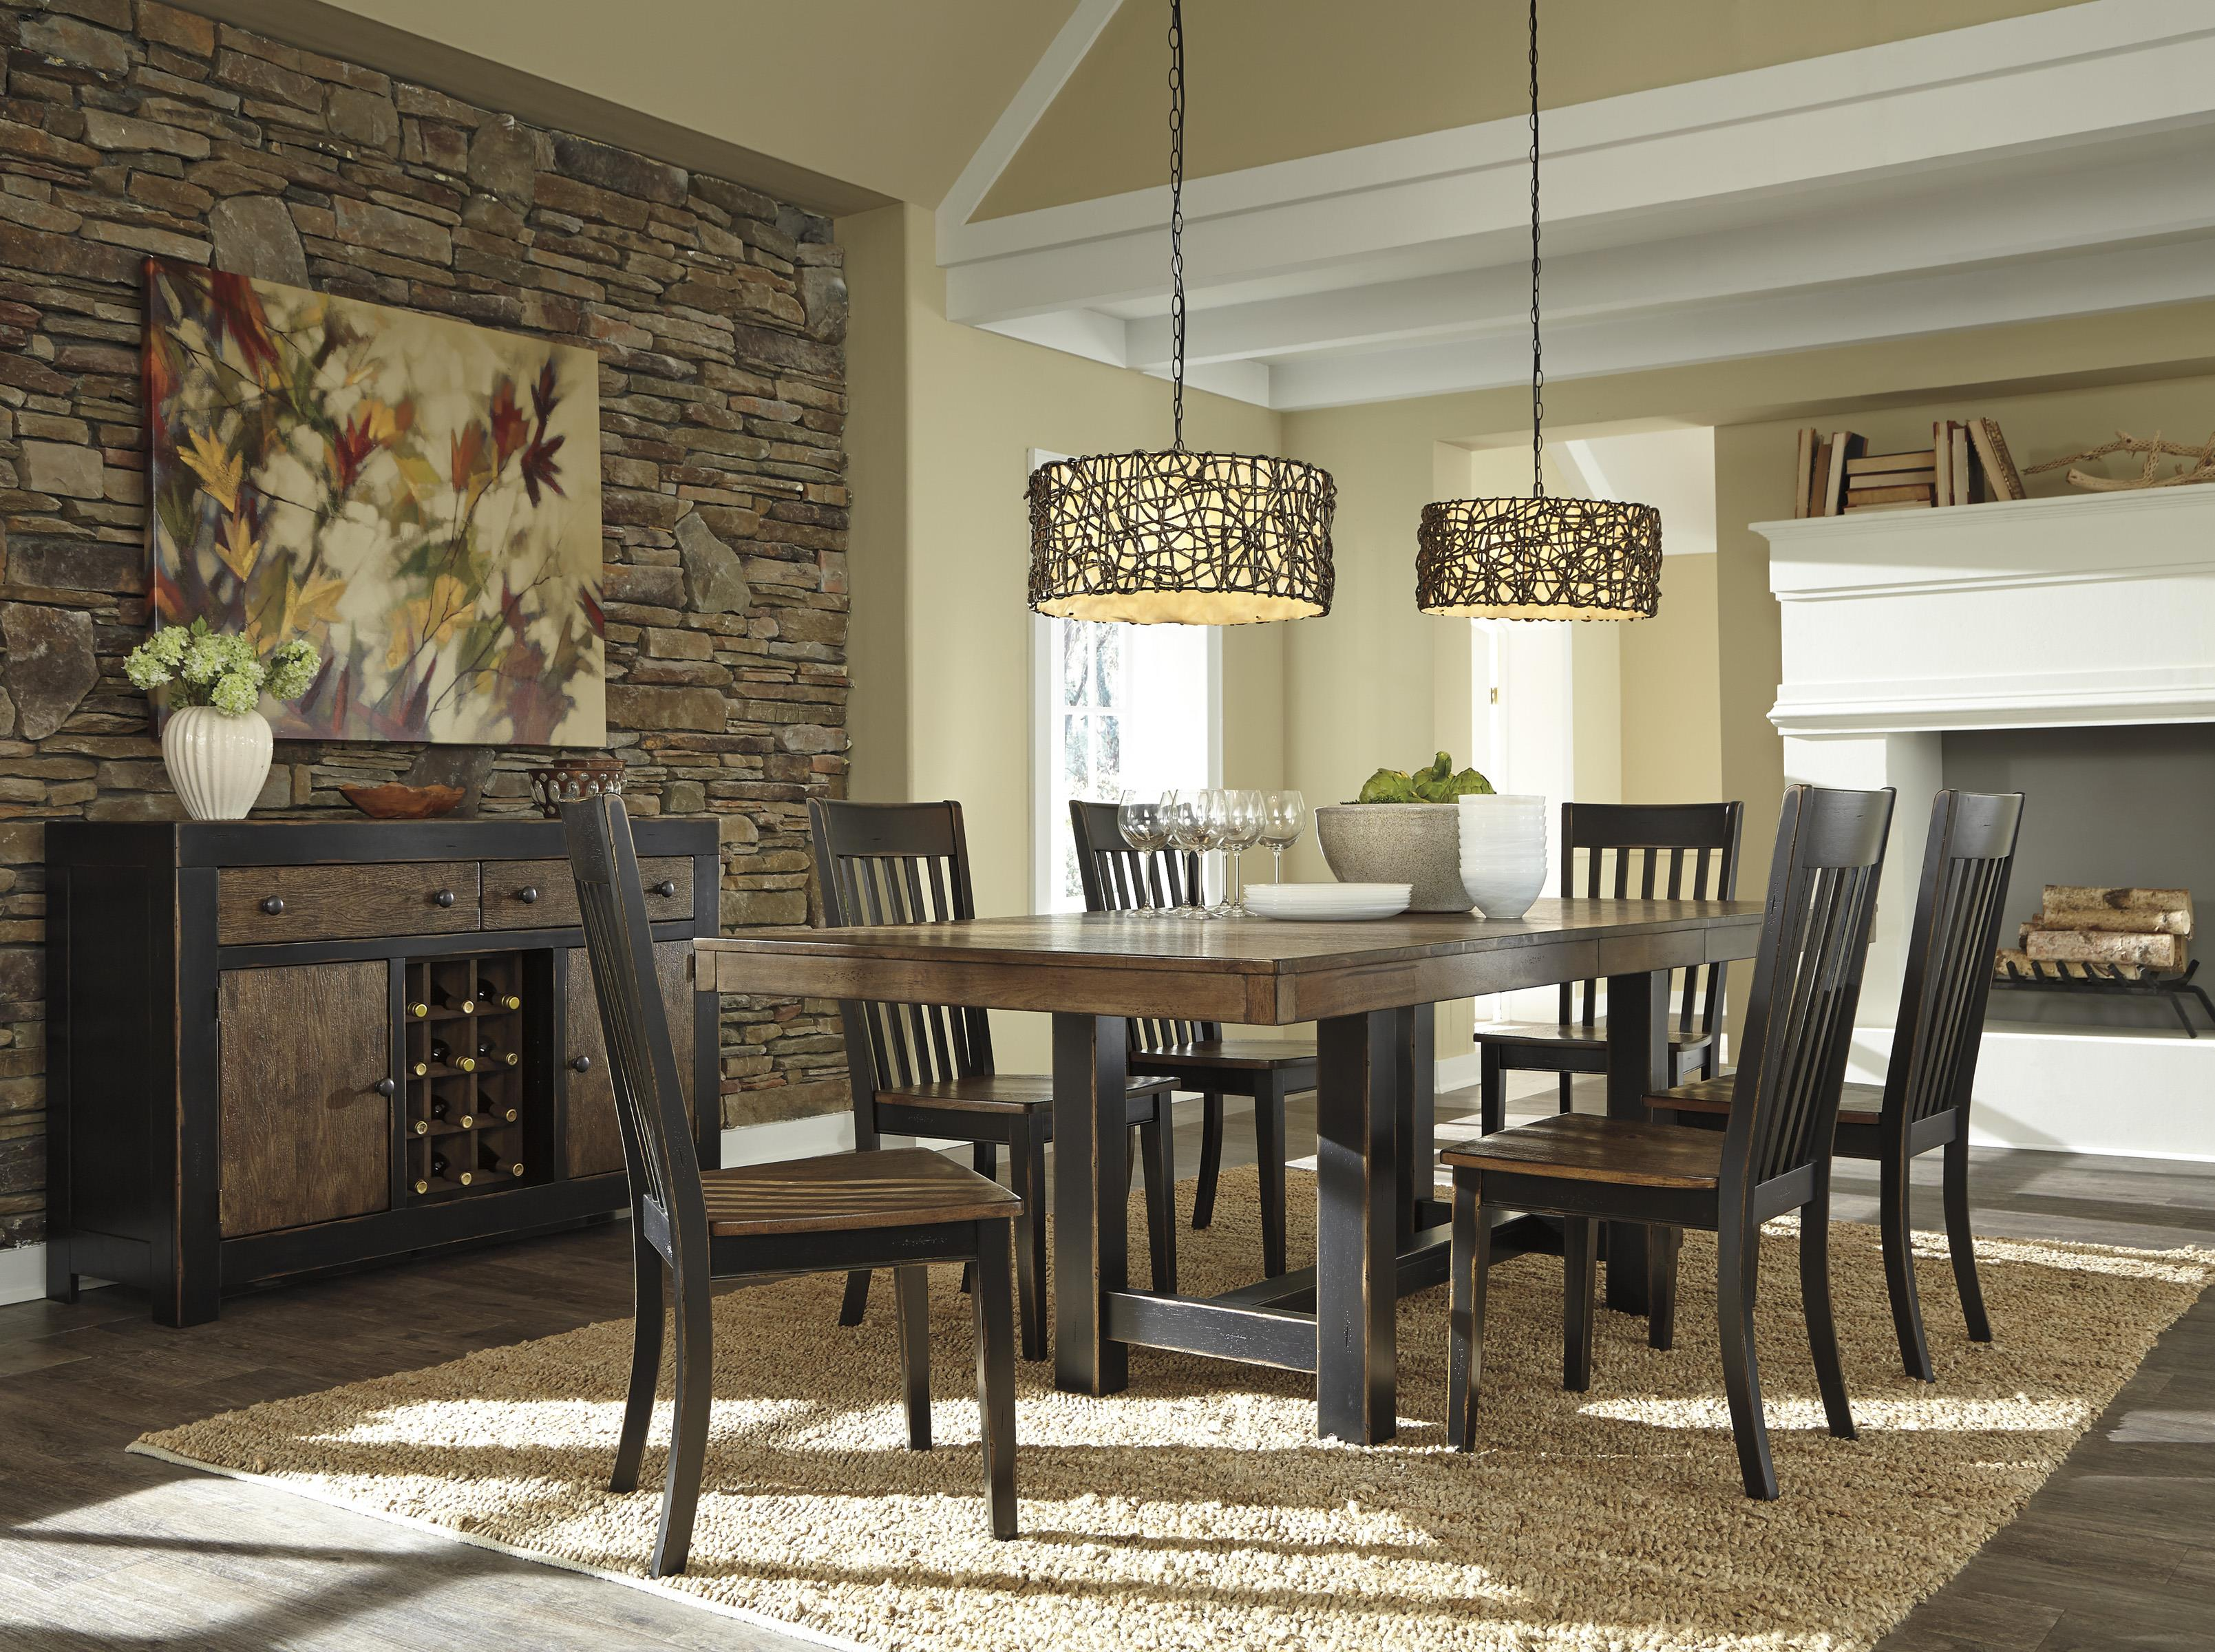 Signature Design by Ashley Emerfield Casual Dining Room Group - Item Number: D563 Dining Room Group 1